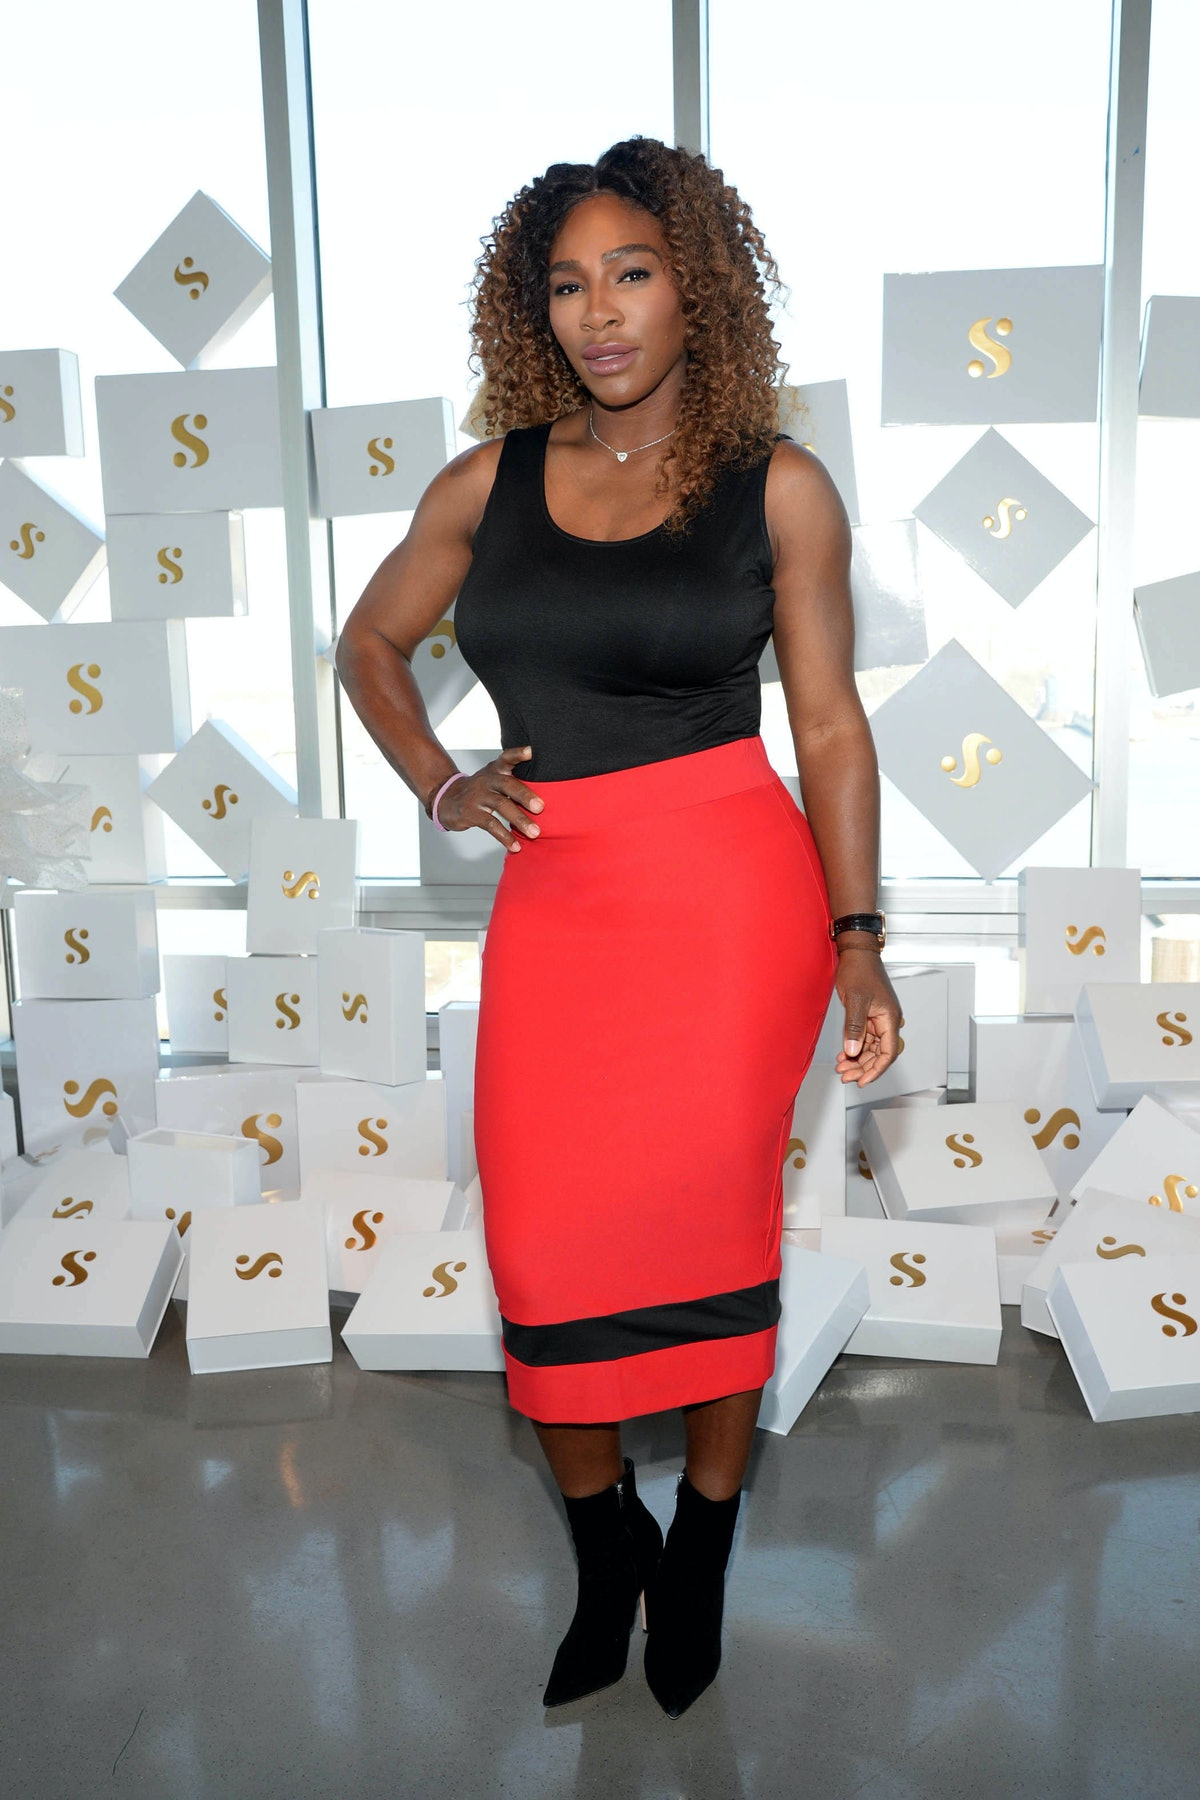 Serena Williams working on her clothing line.